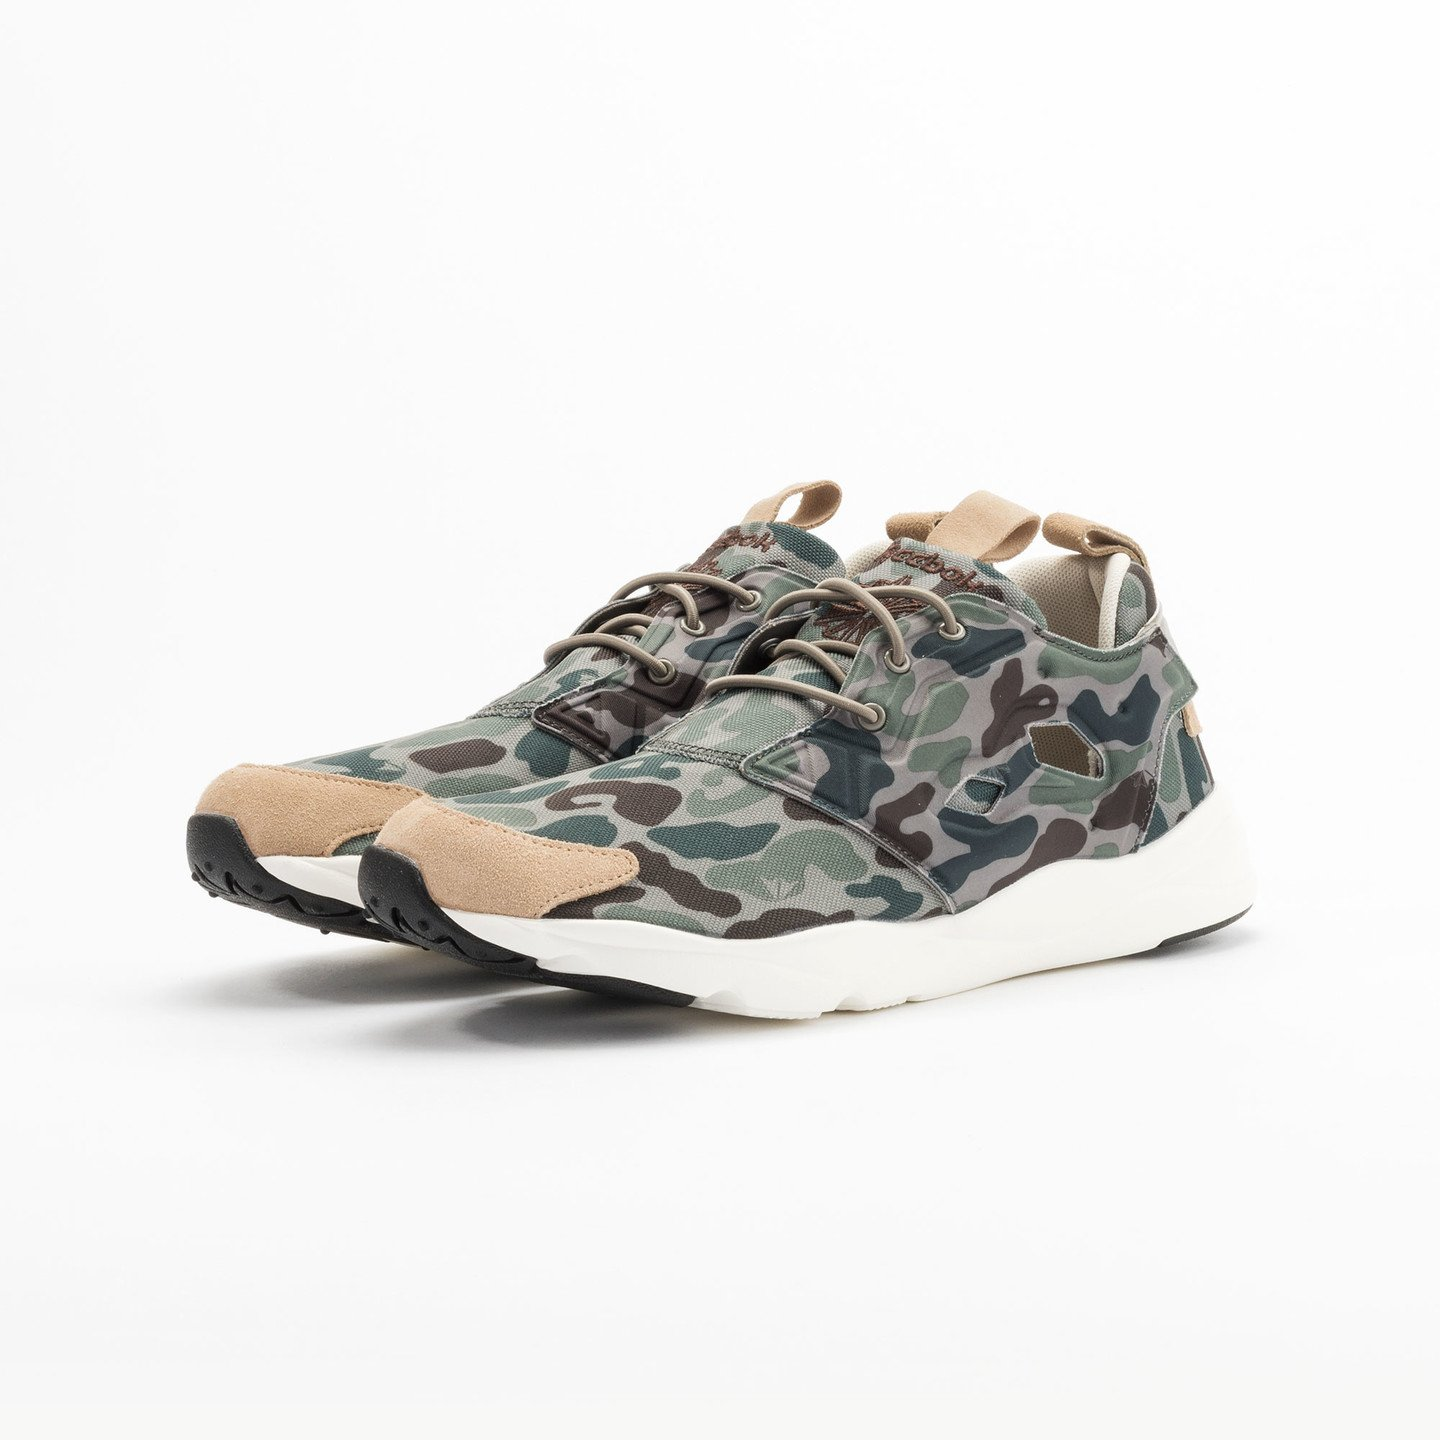 Reebok Furylite Camo Cement / Silvery Green / Sage V67089-43